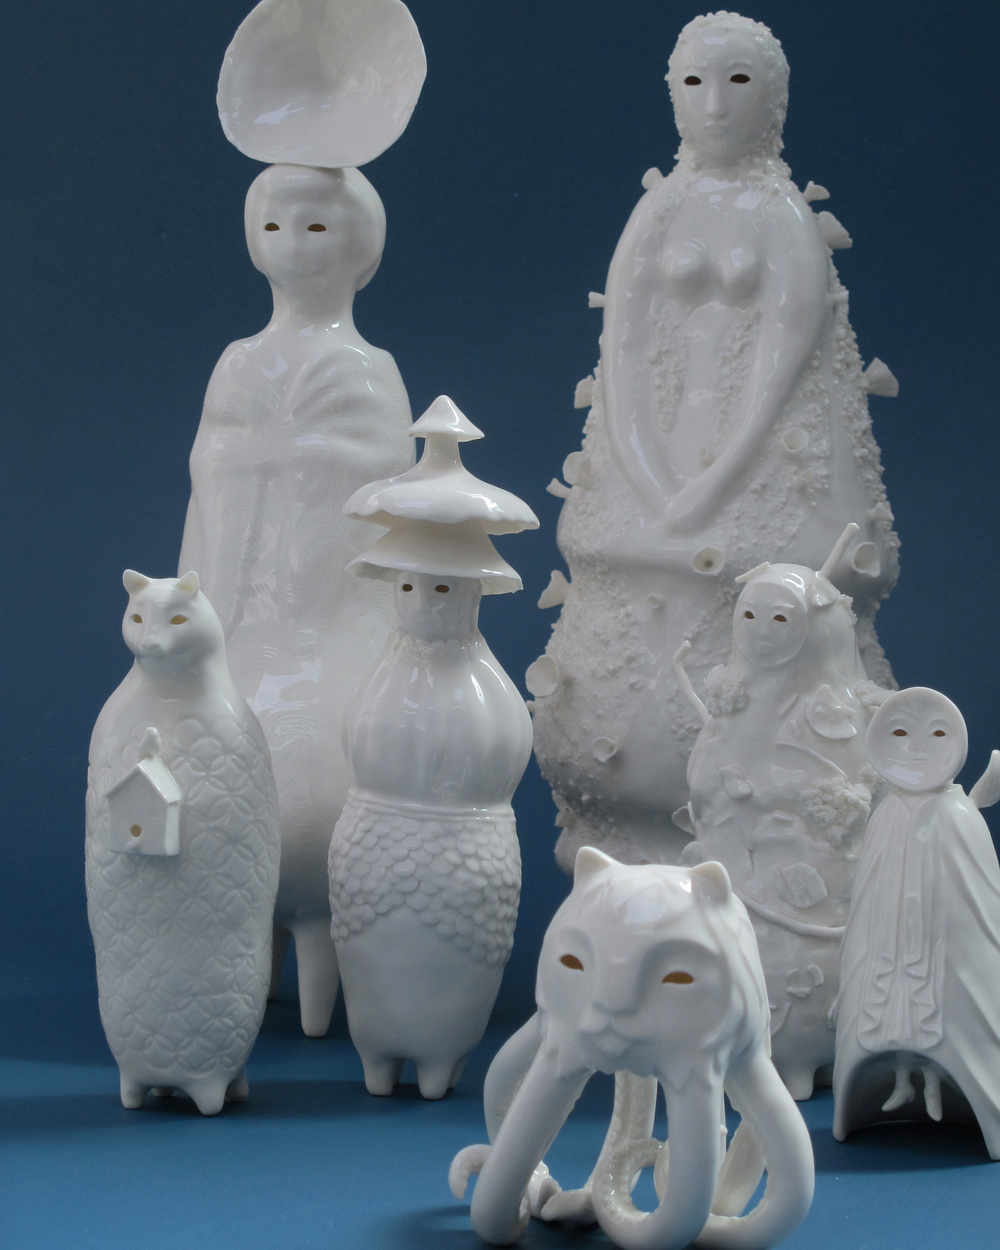 ceramic-artist-animals-mythical-sophie-woodrow.j